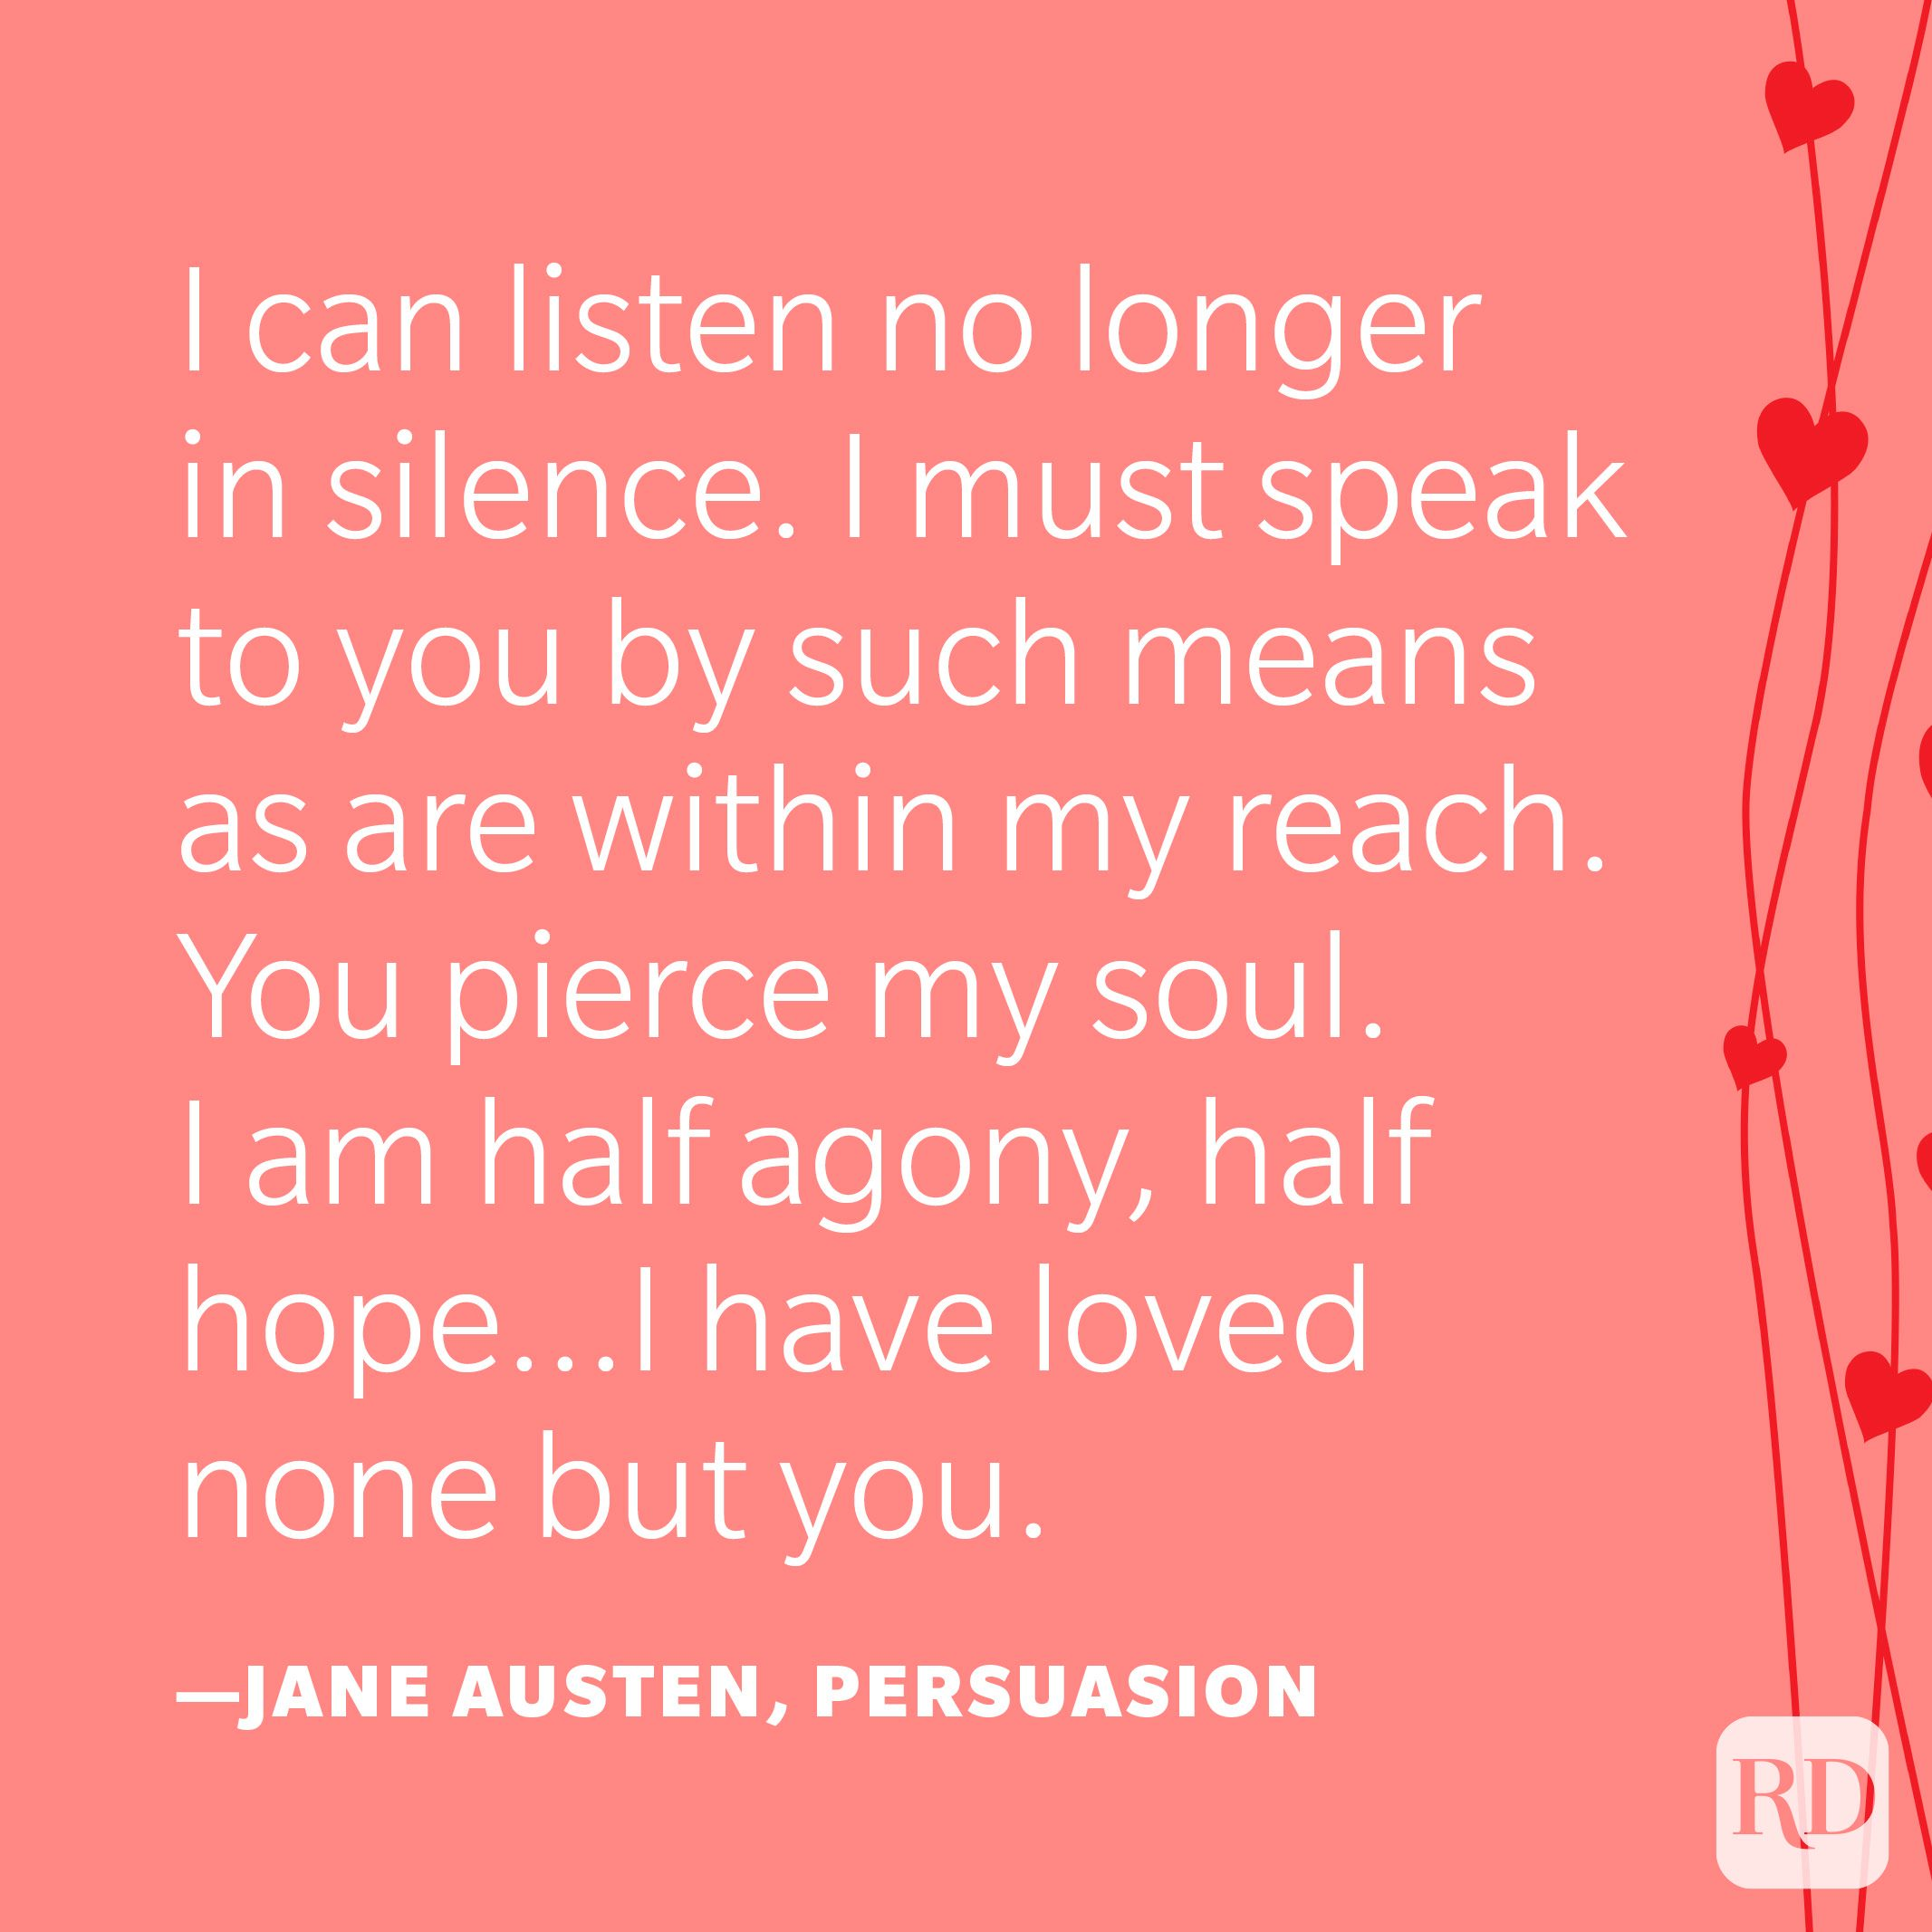 """""""I can listen no longer in silence. I must speak to you by such means as are within my reach. You pierce my soul. I am half agony, half hope…I have loved none but you."""" —Jane Austen, Persuasion"""